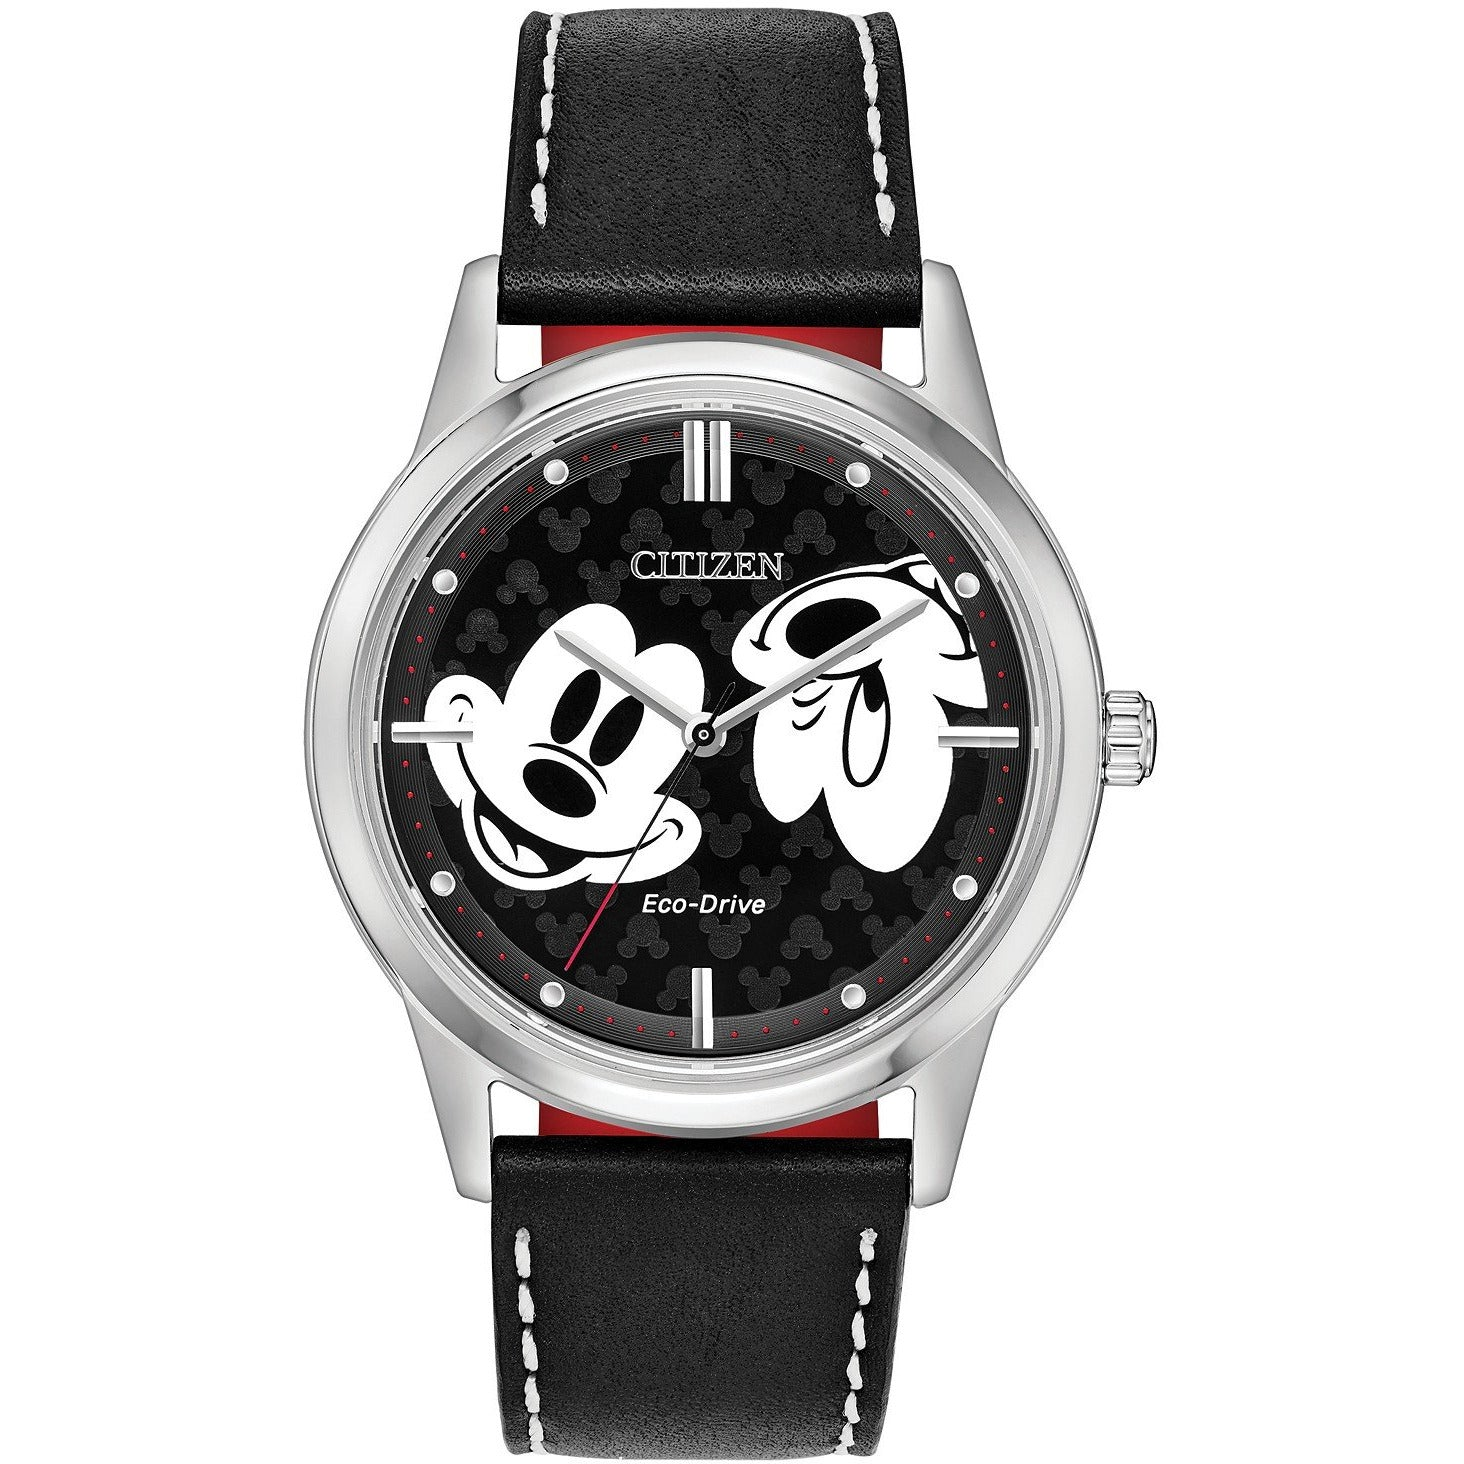 Citizen Eco-Drive Mickey Mouse Unisex watch $295.00 FE7060-05W - shirin-diamonds